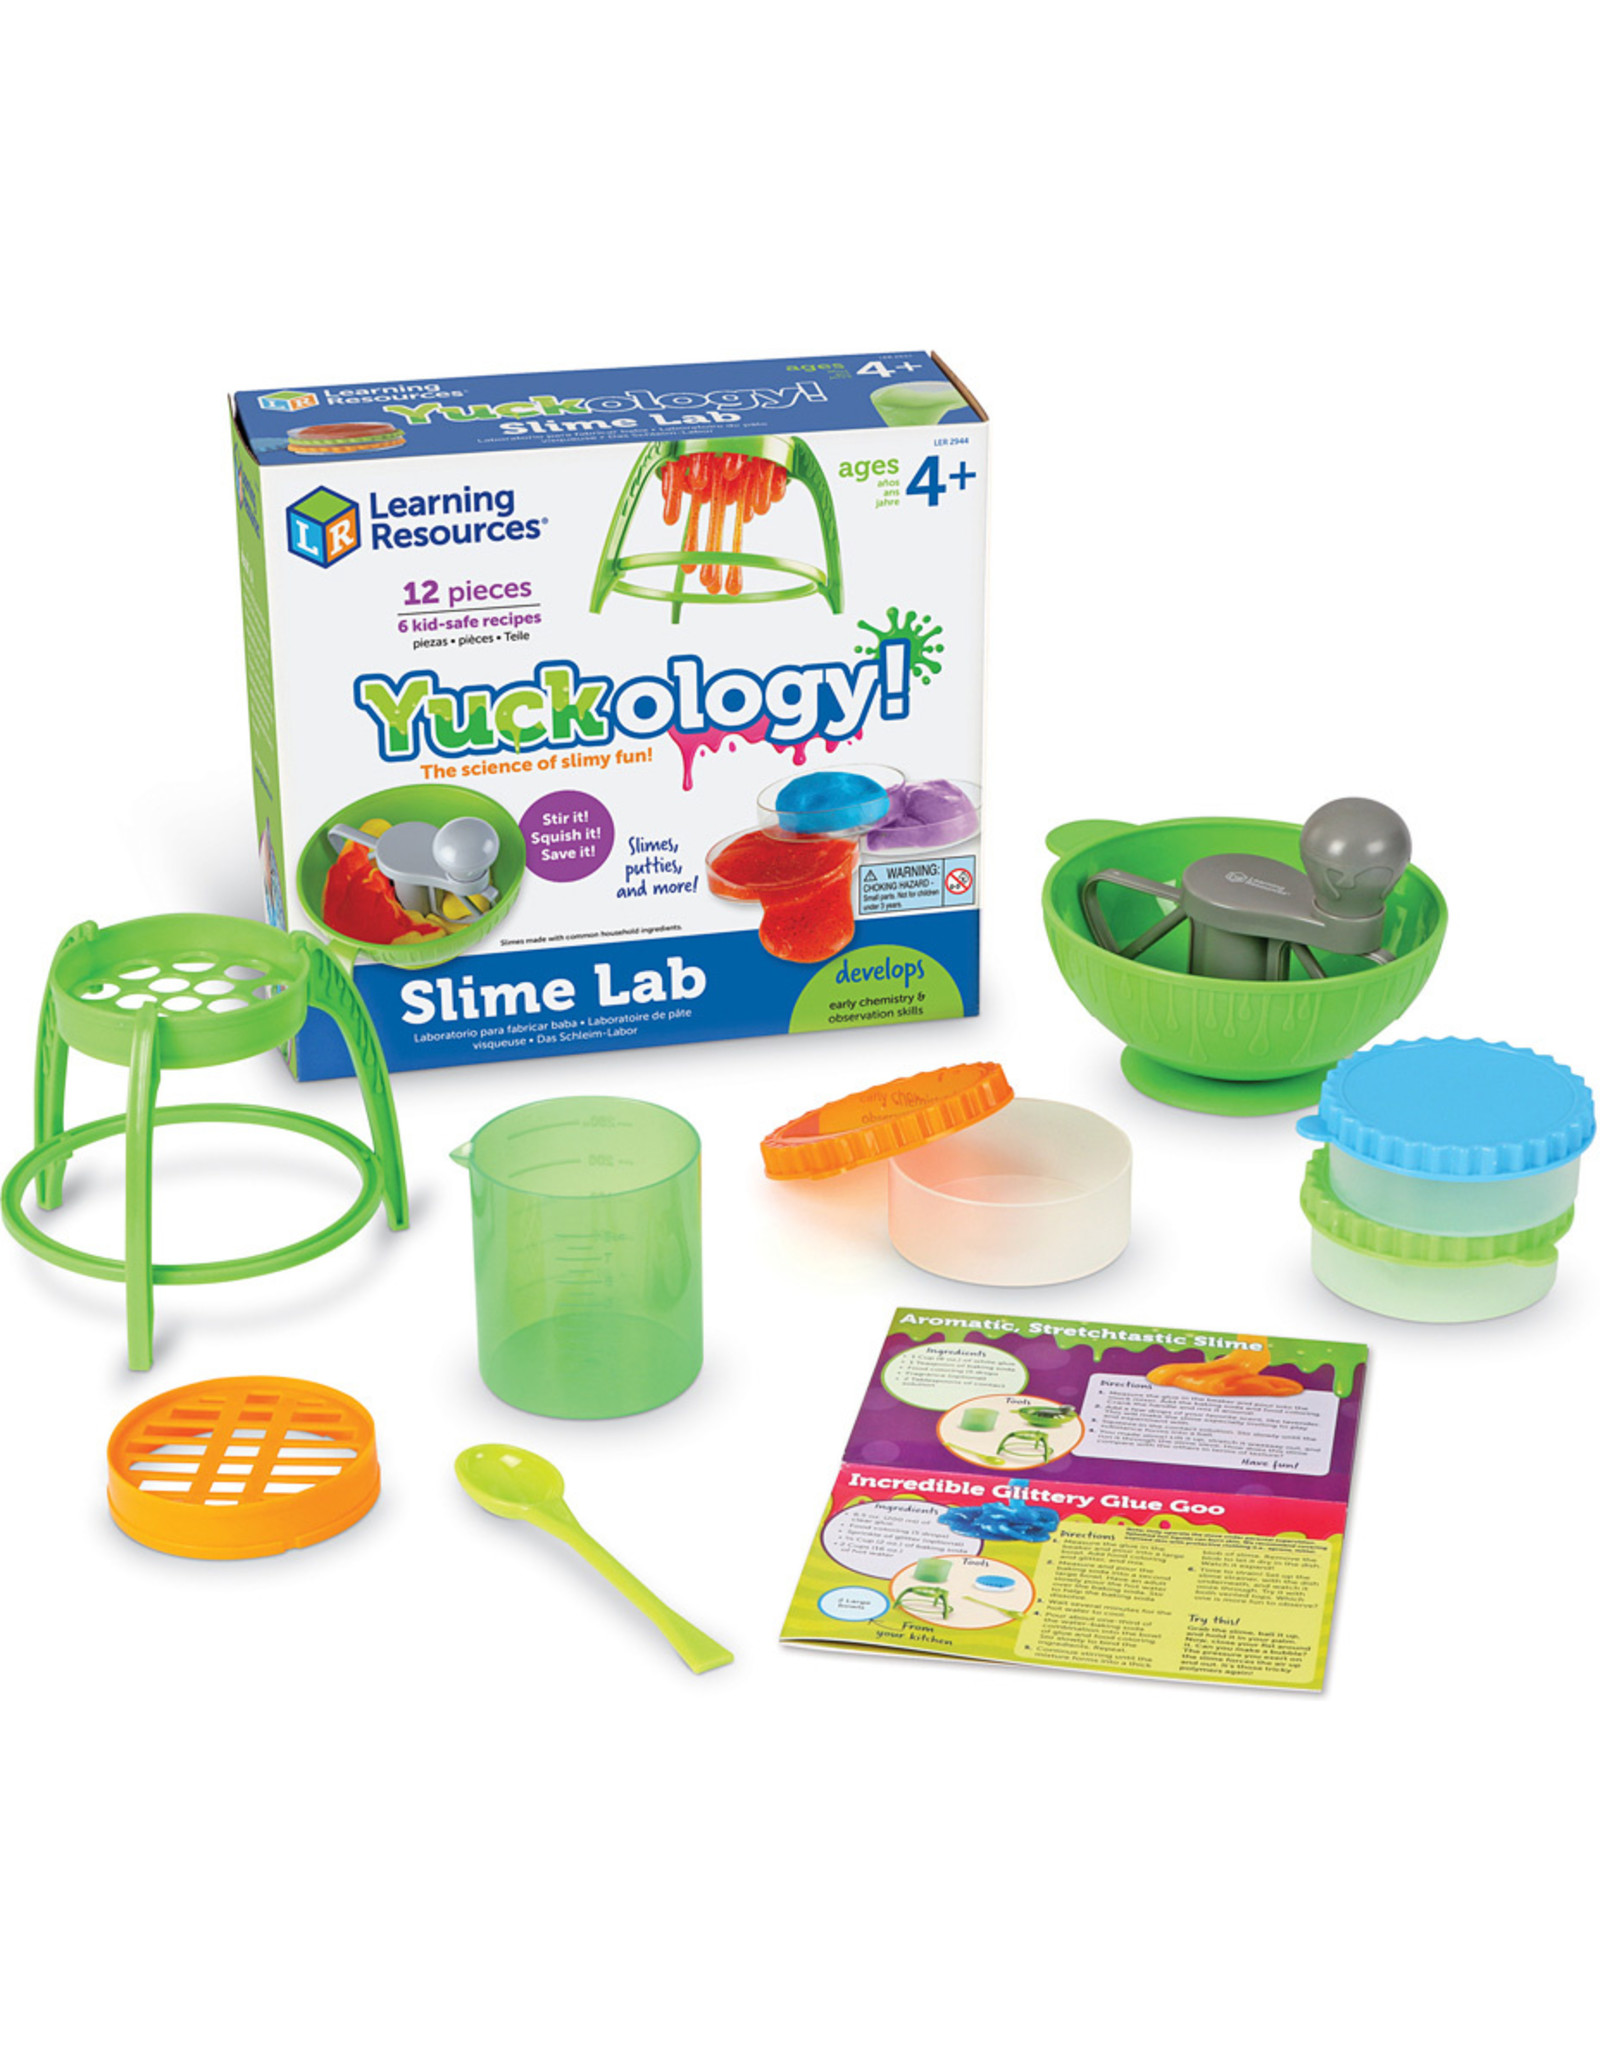 Learning Resources Yuckology! Slime Lab